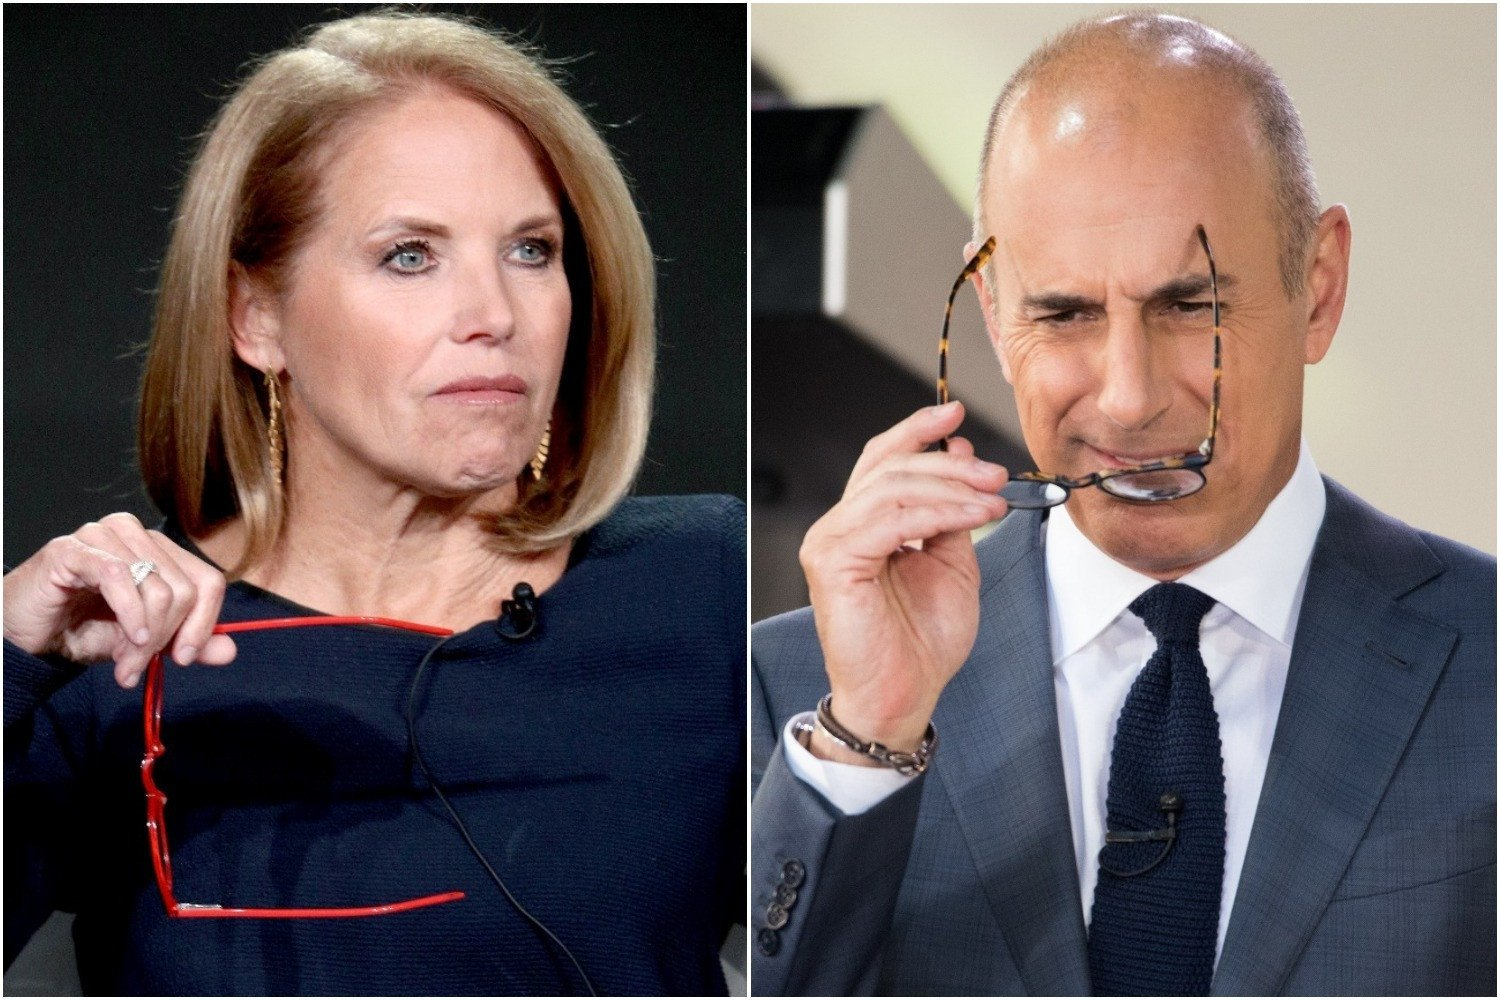 Katie Couric hopes Matt Lauer has learned his lesson